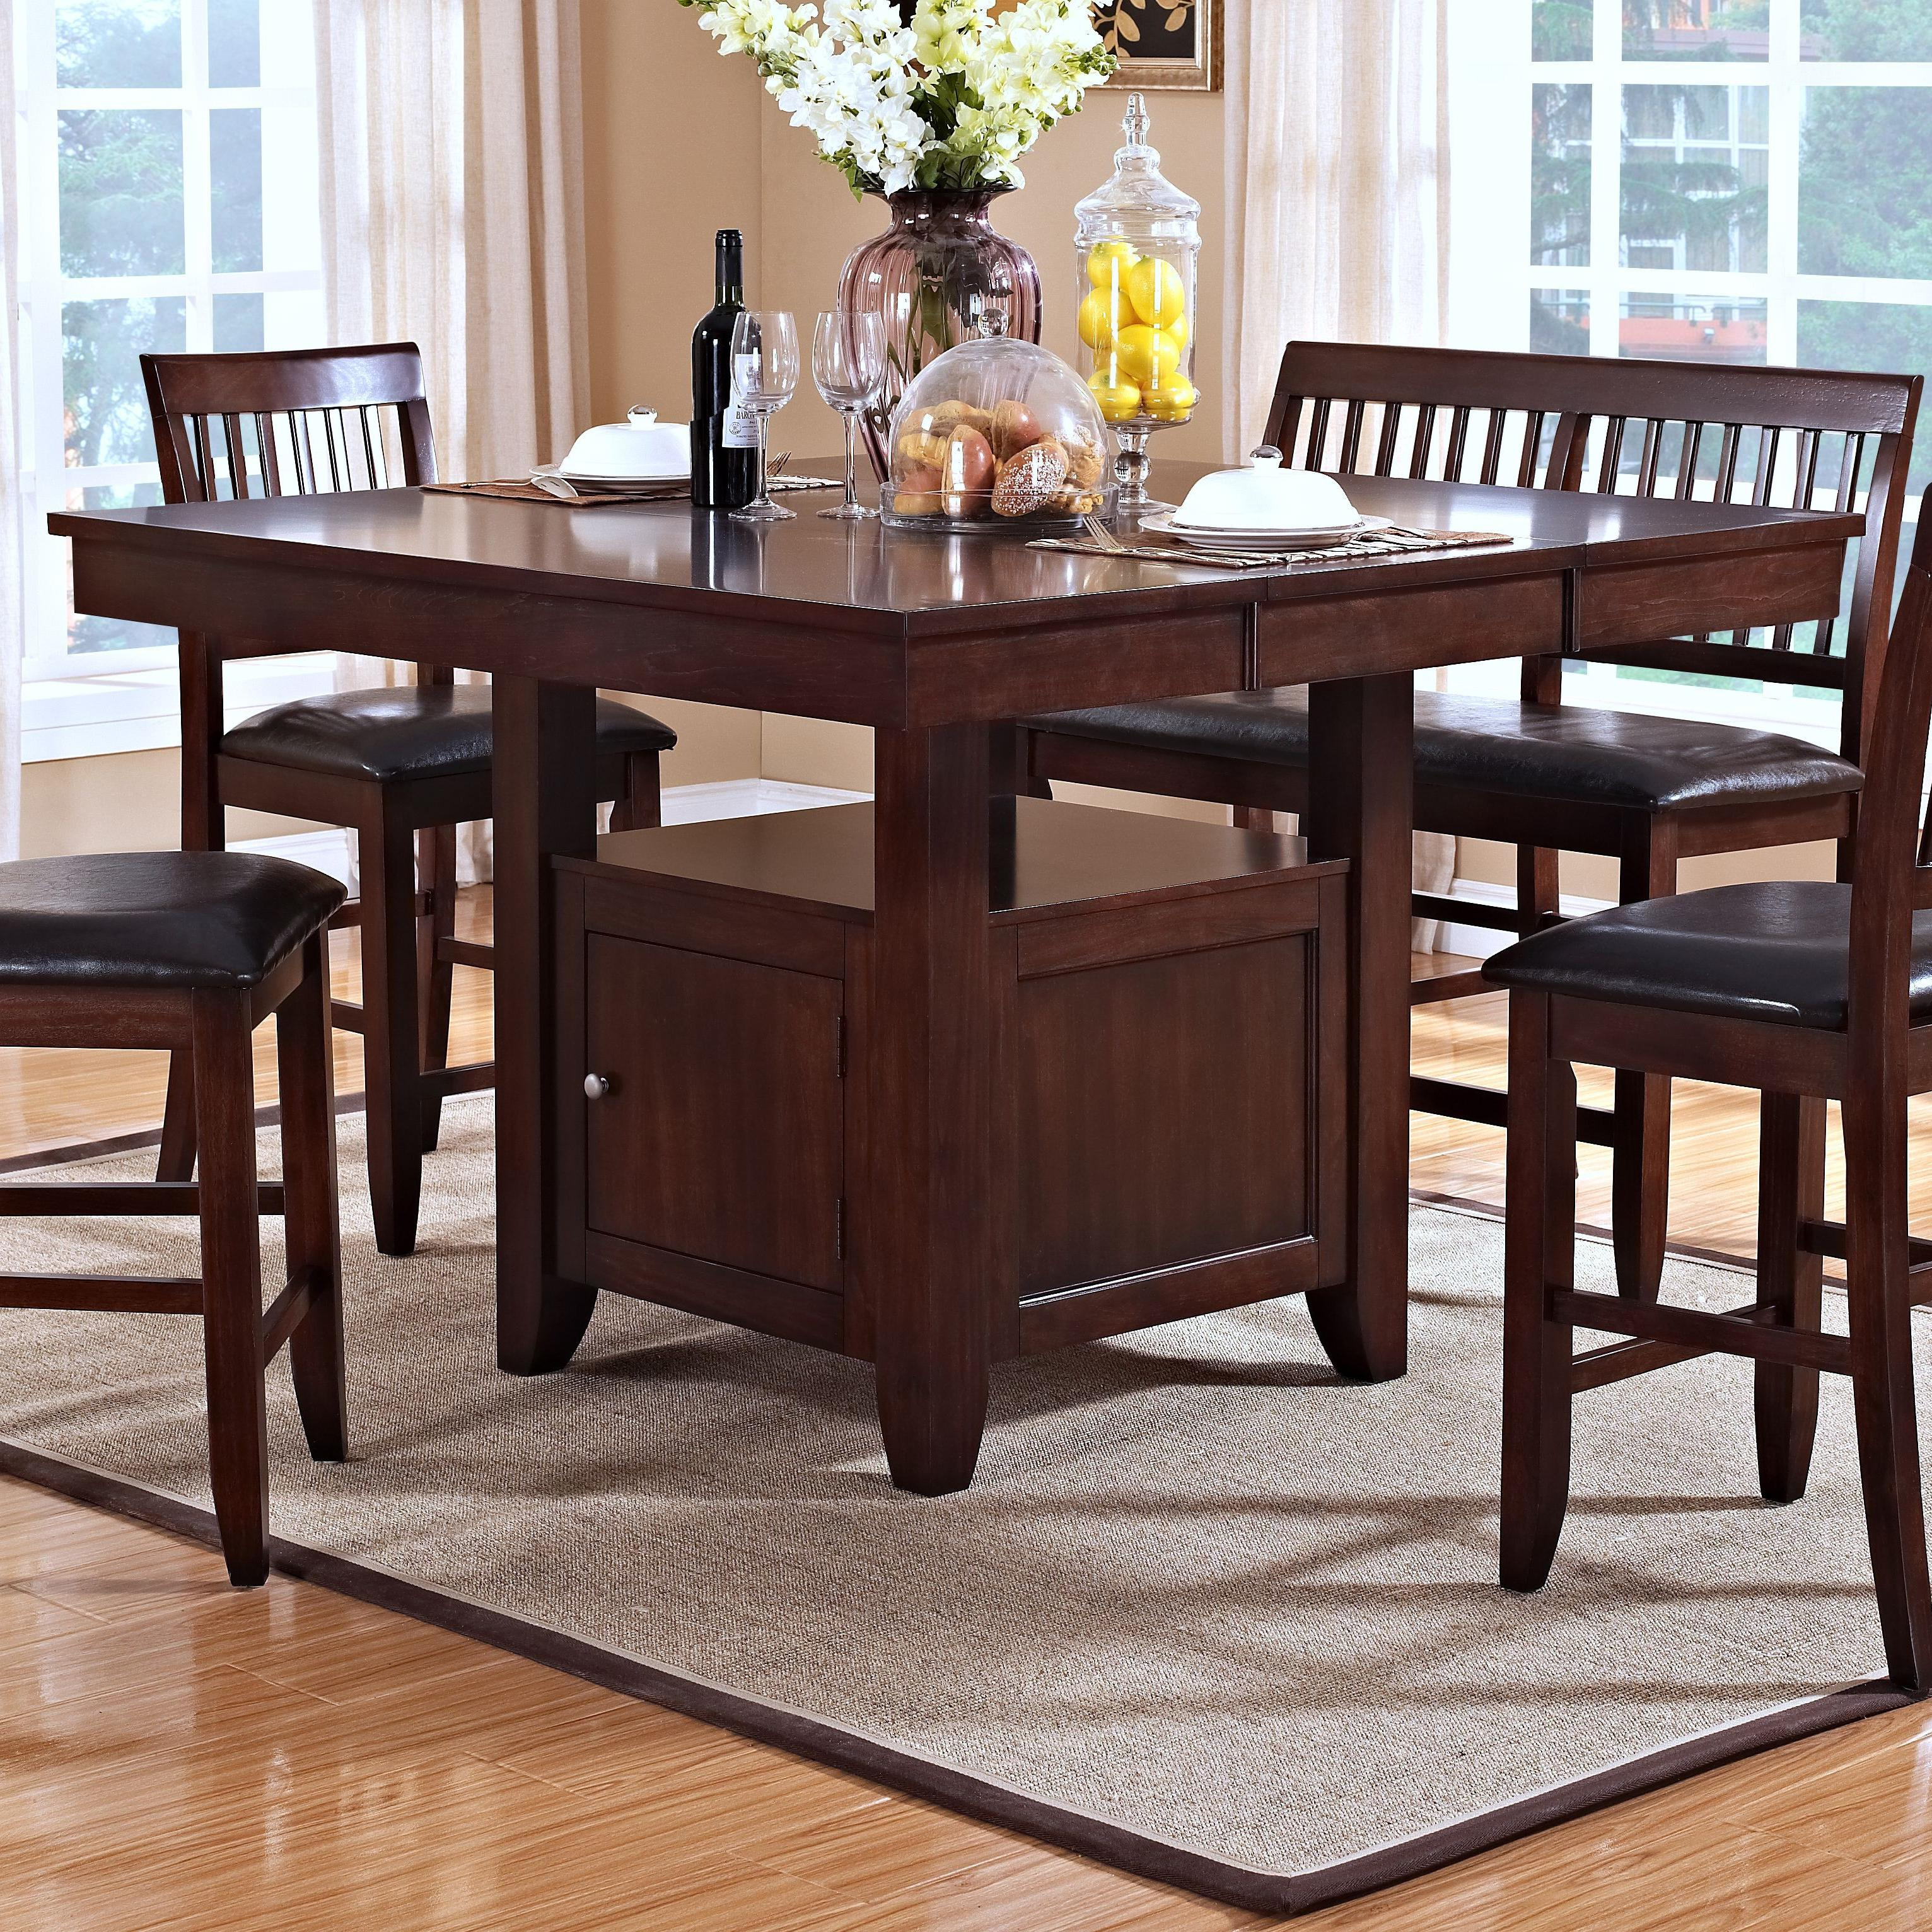 New Classic Kaylee Counter Height Table   Item Number: 45 101 10+